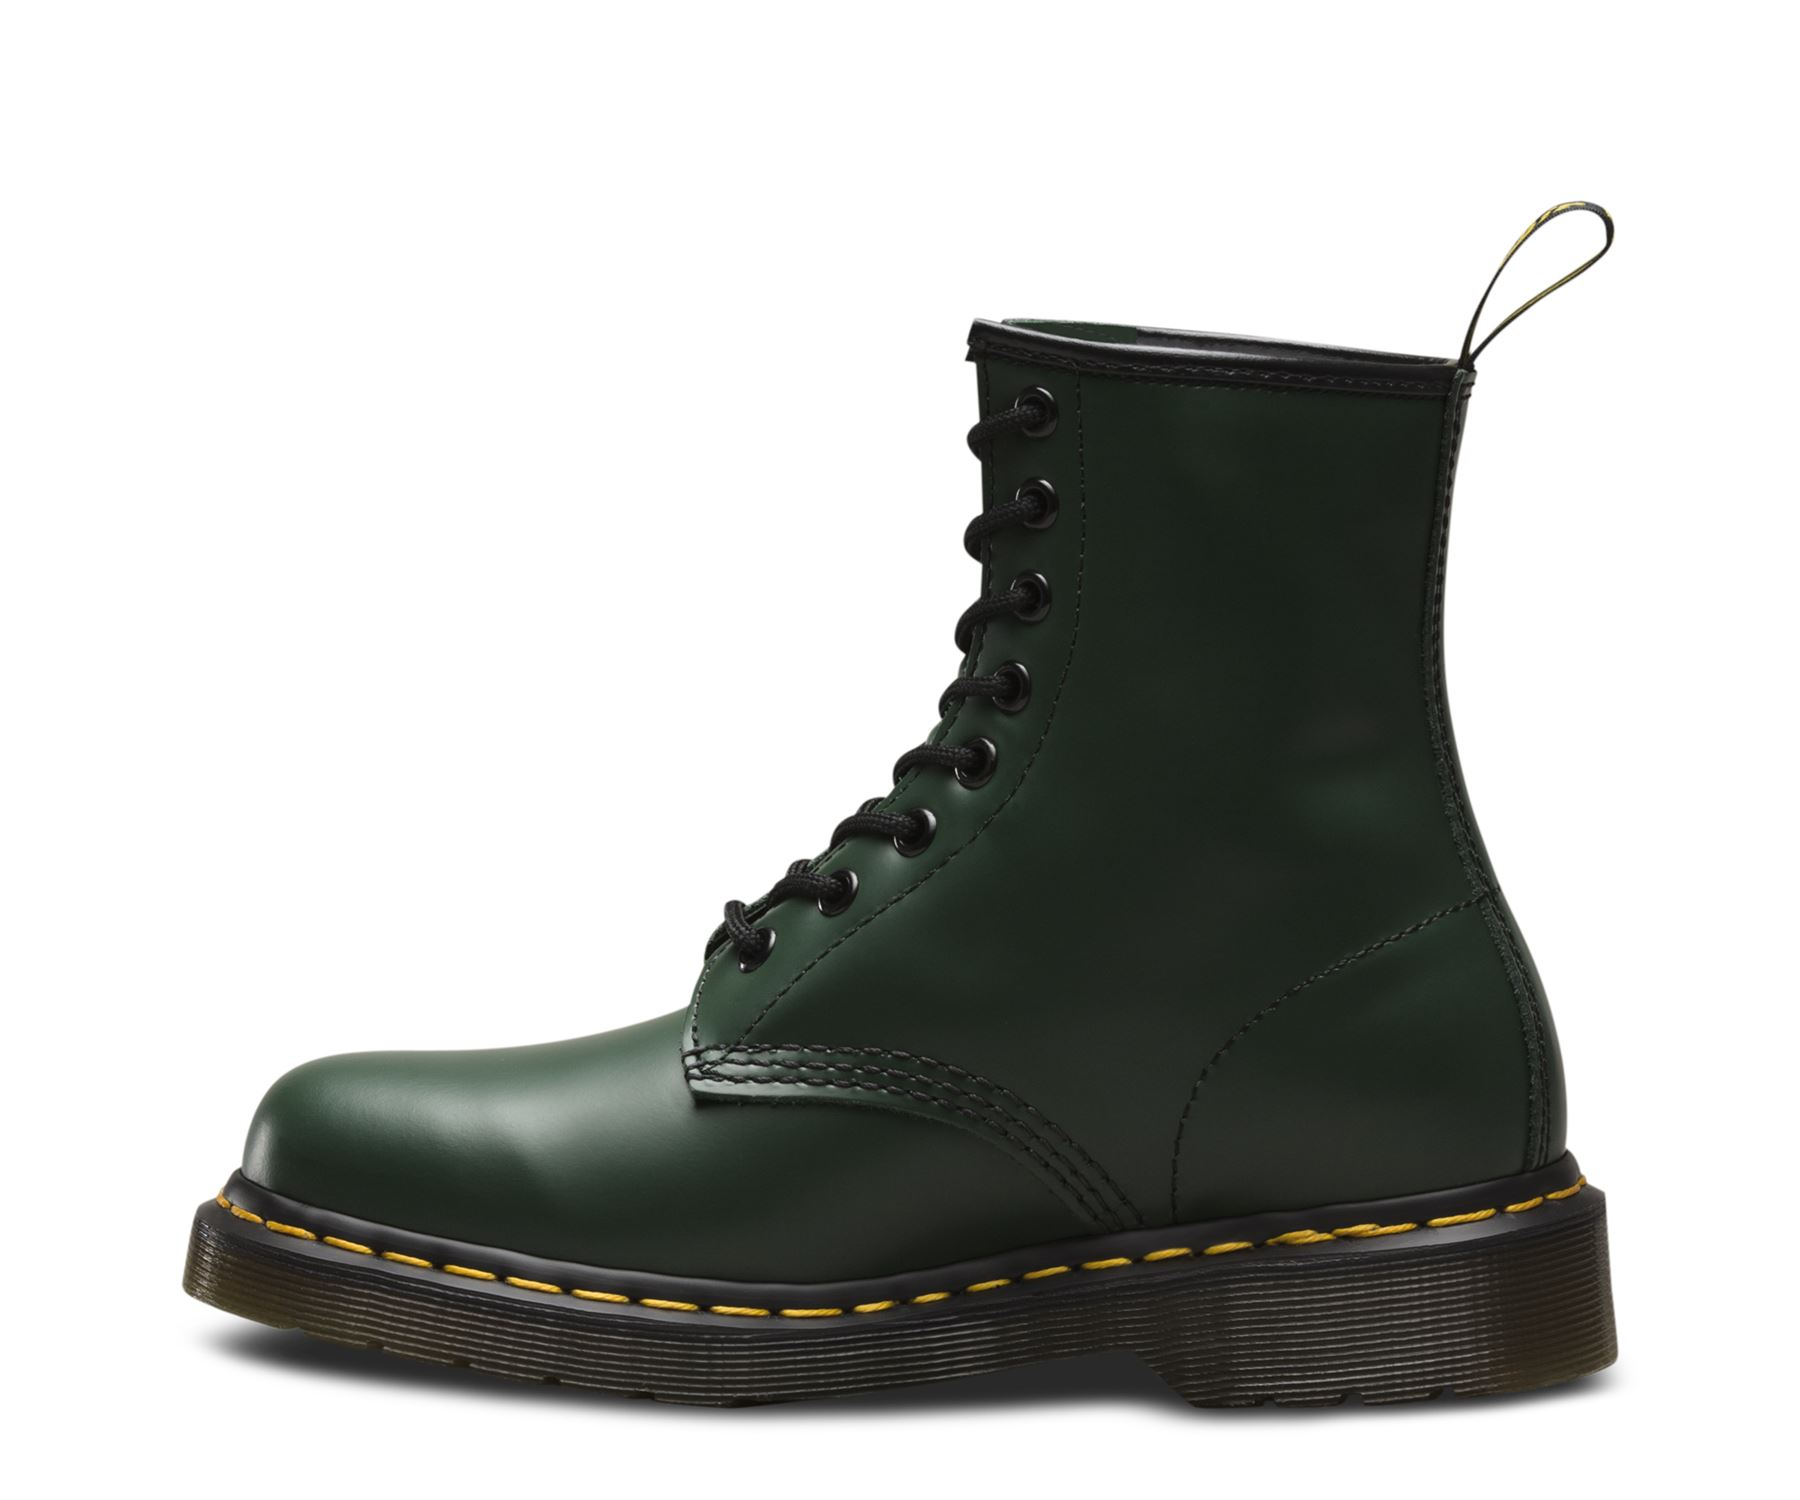 dr martens unisex 1460 green classic smooth leather 8 eye ankle doc. Black Bedroom Furniture Sets. Home Design Ideas